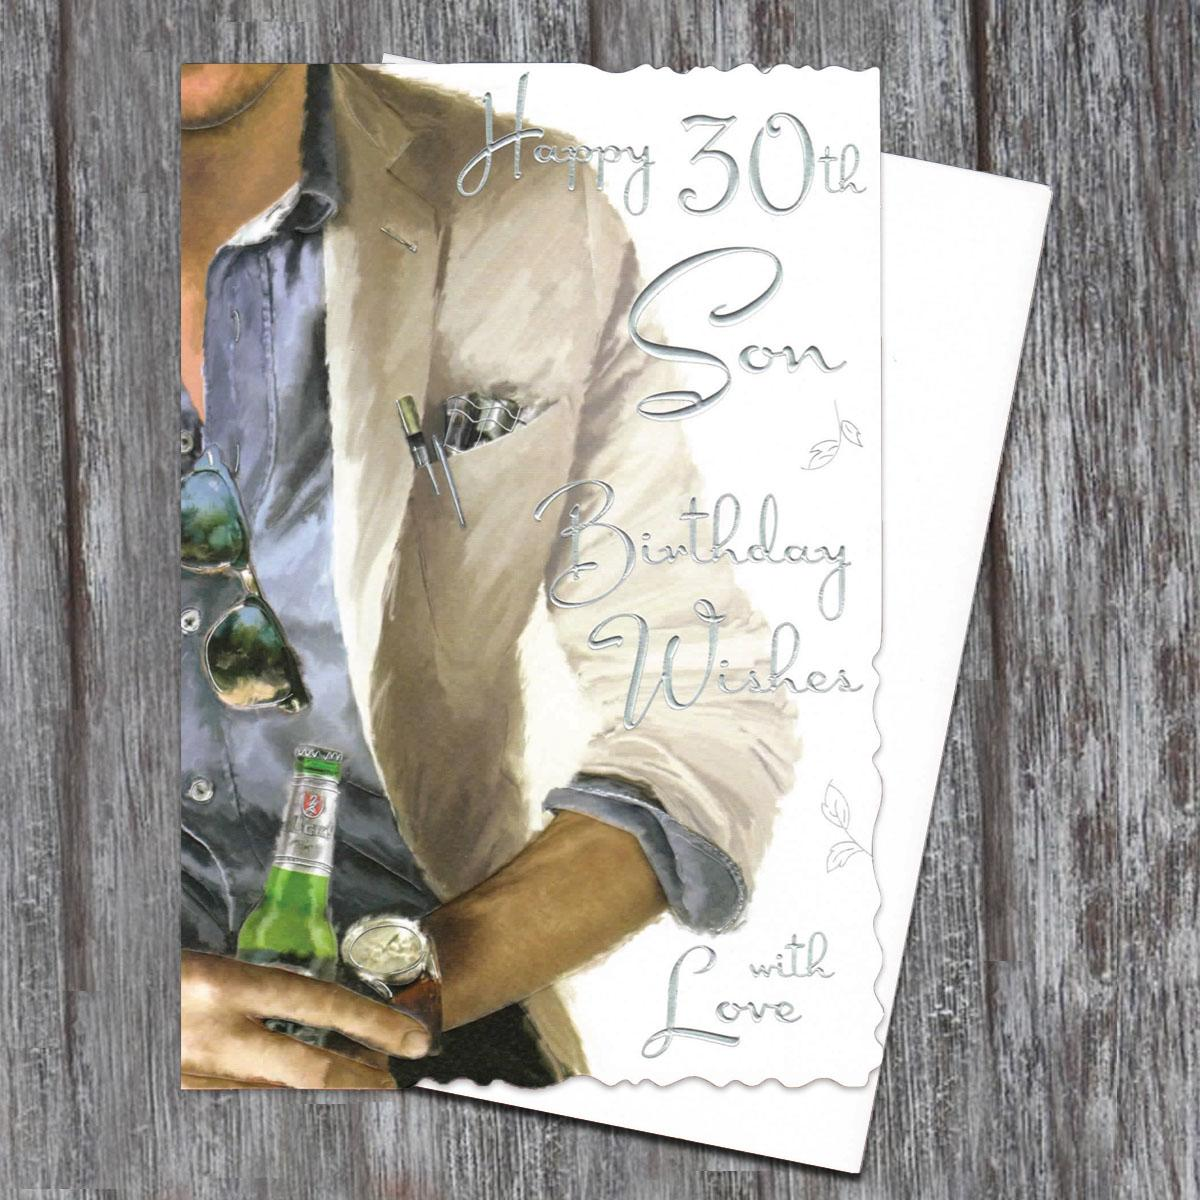 Son Age 30 Birthday Card Alongside Its White Envelope